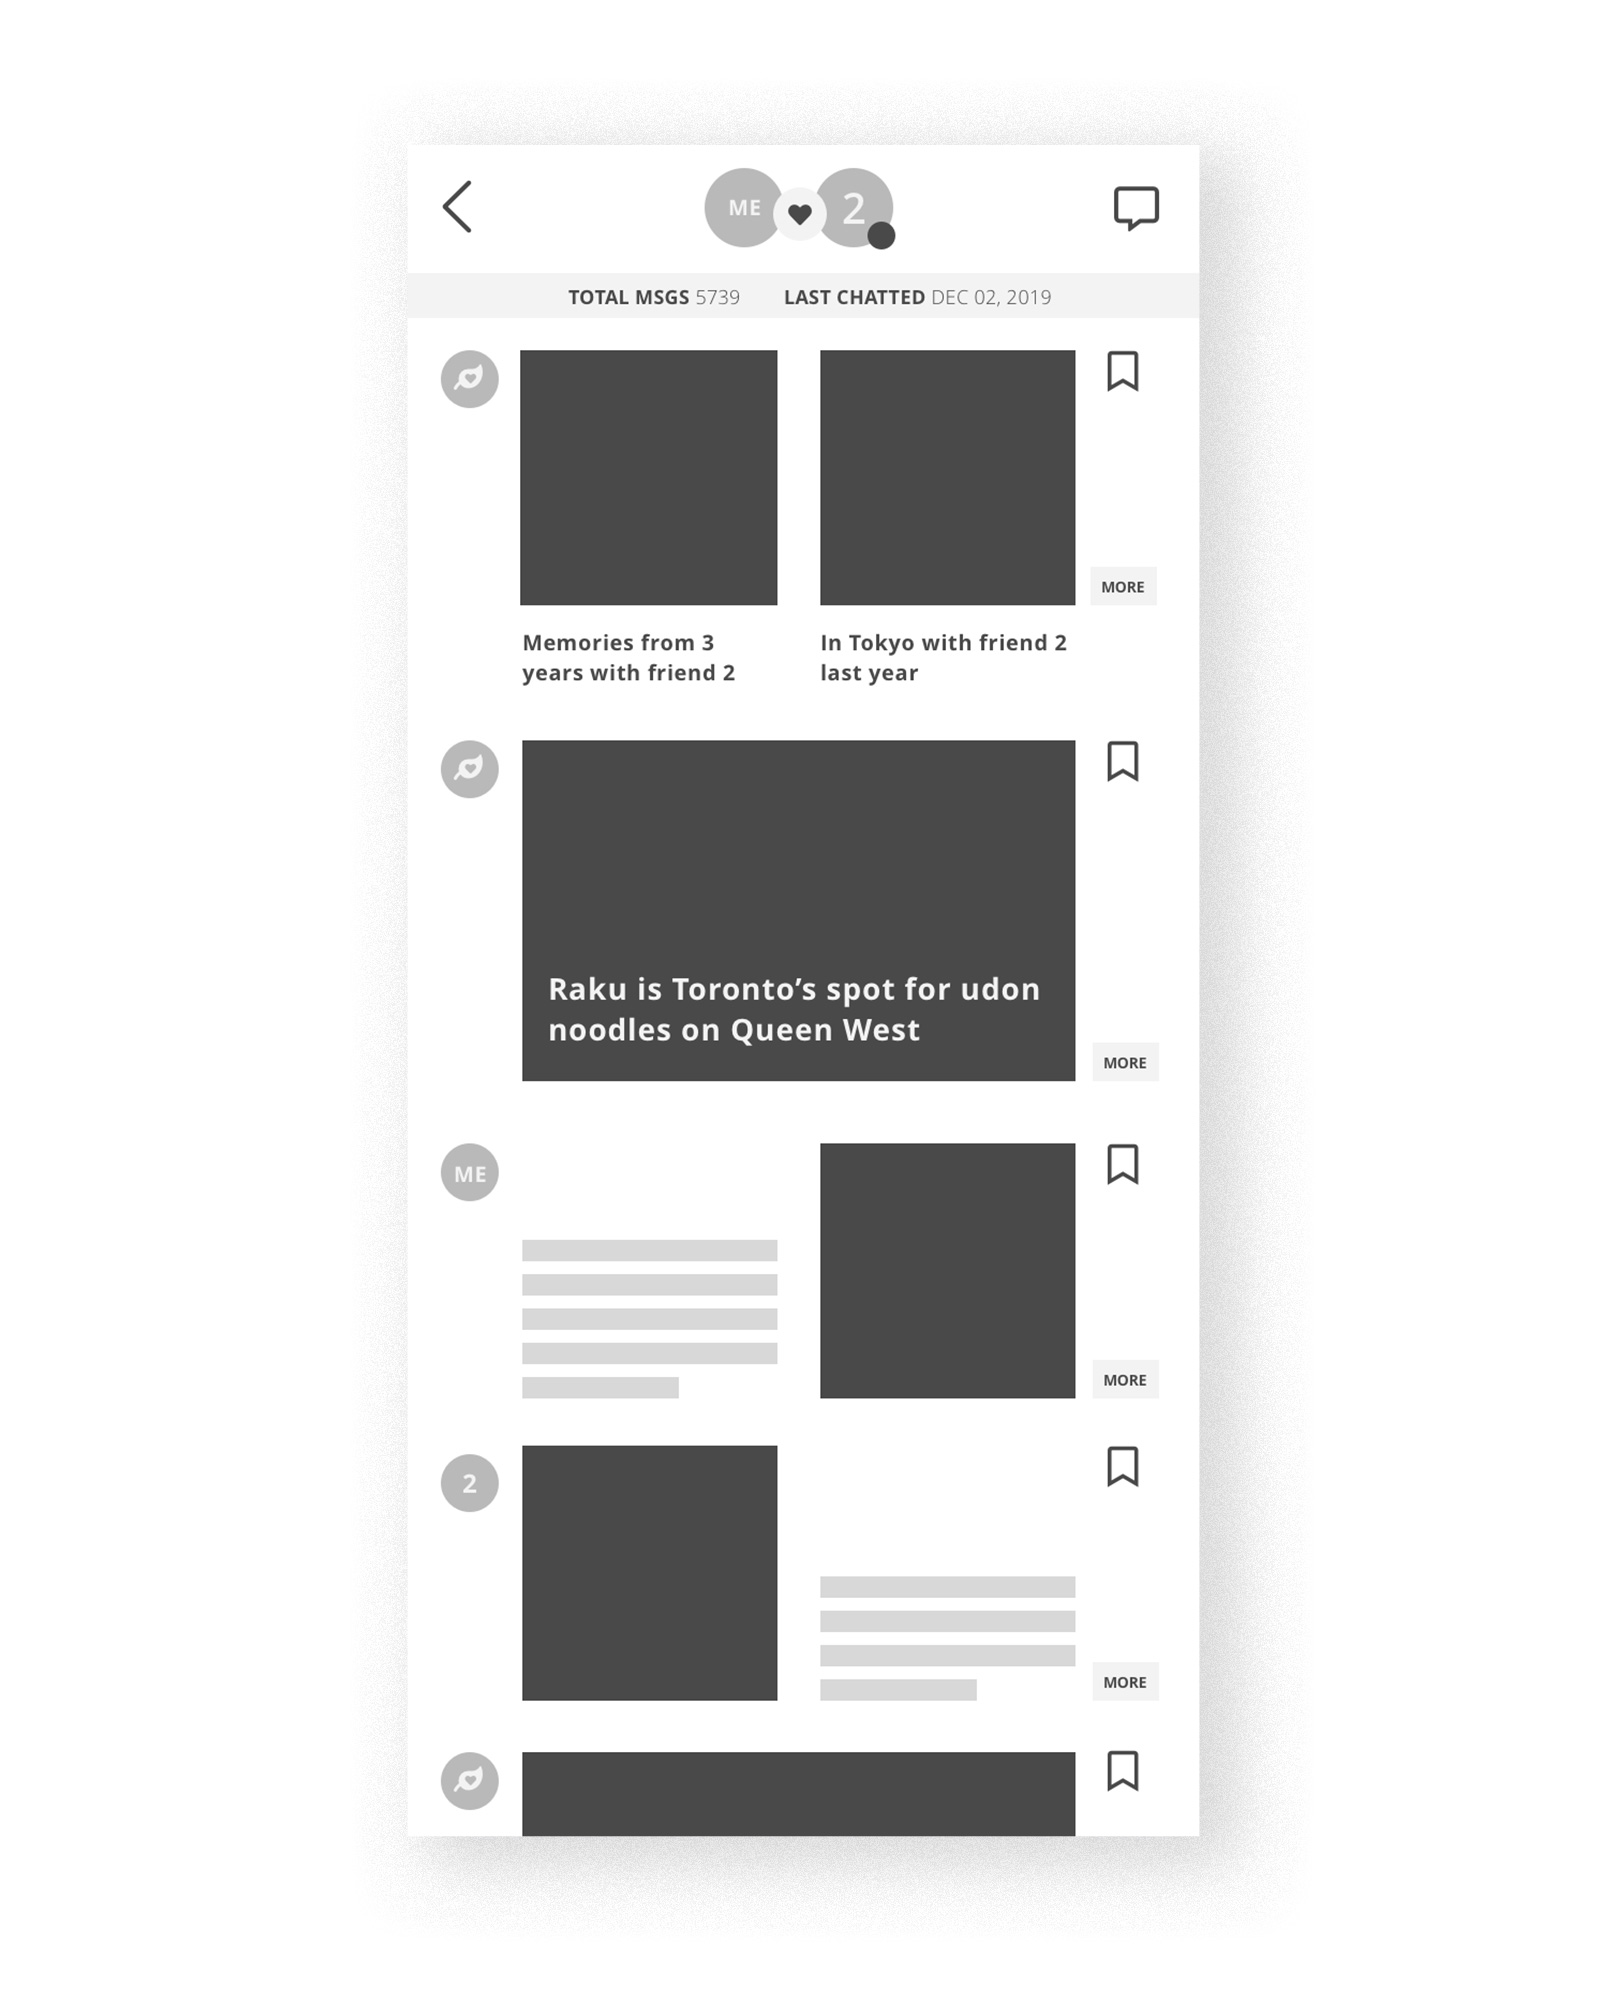 Version 4: A digital version of V3, showing a feed where the app can suggest stories and user can add to it